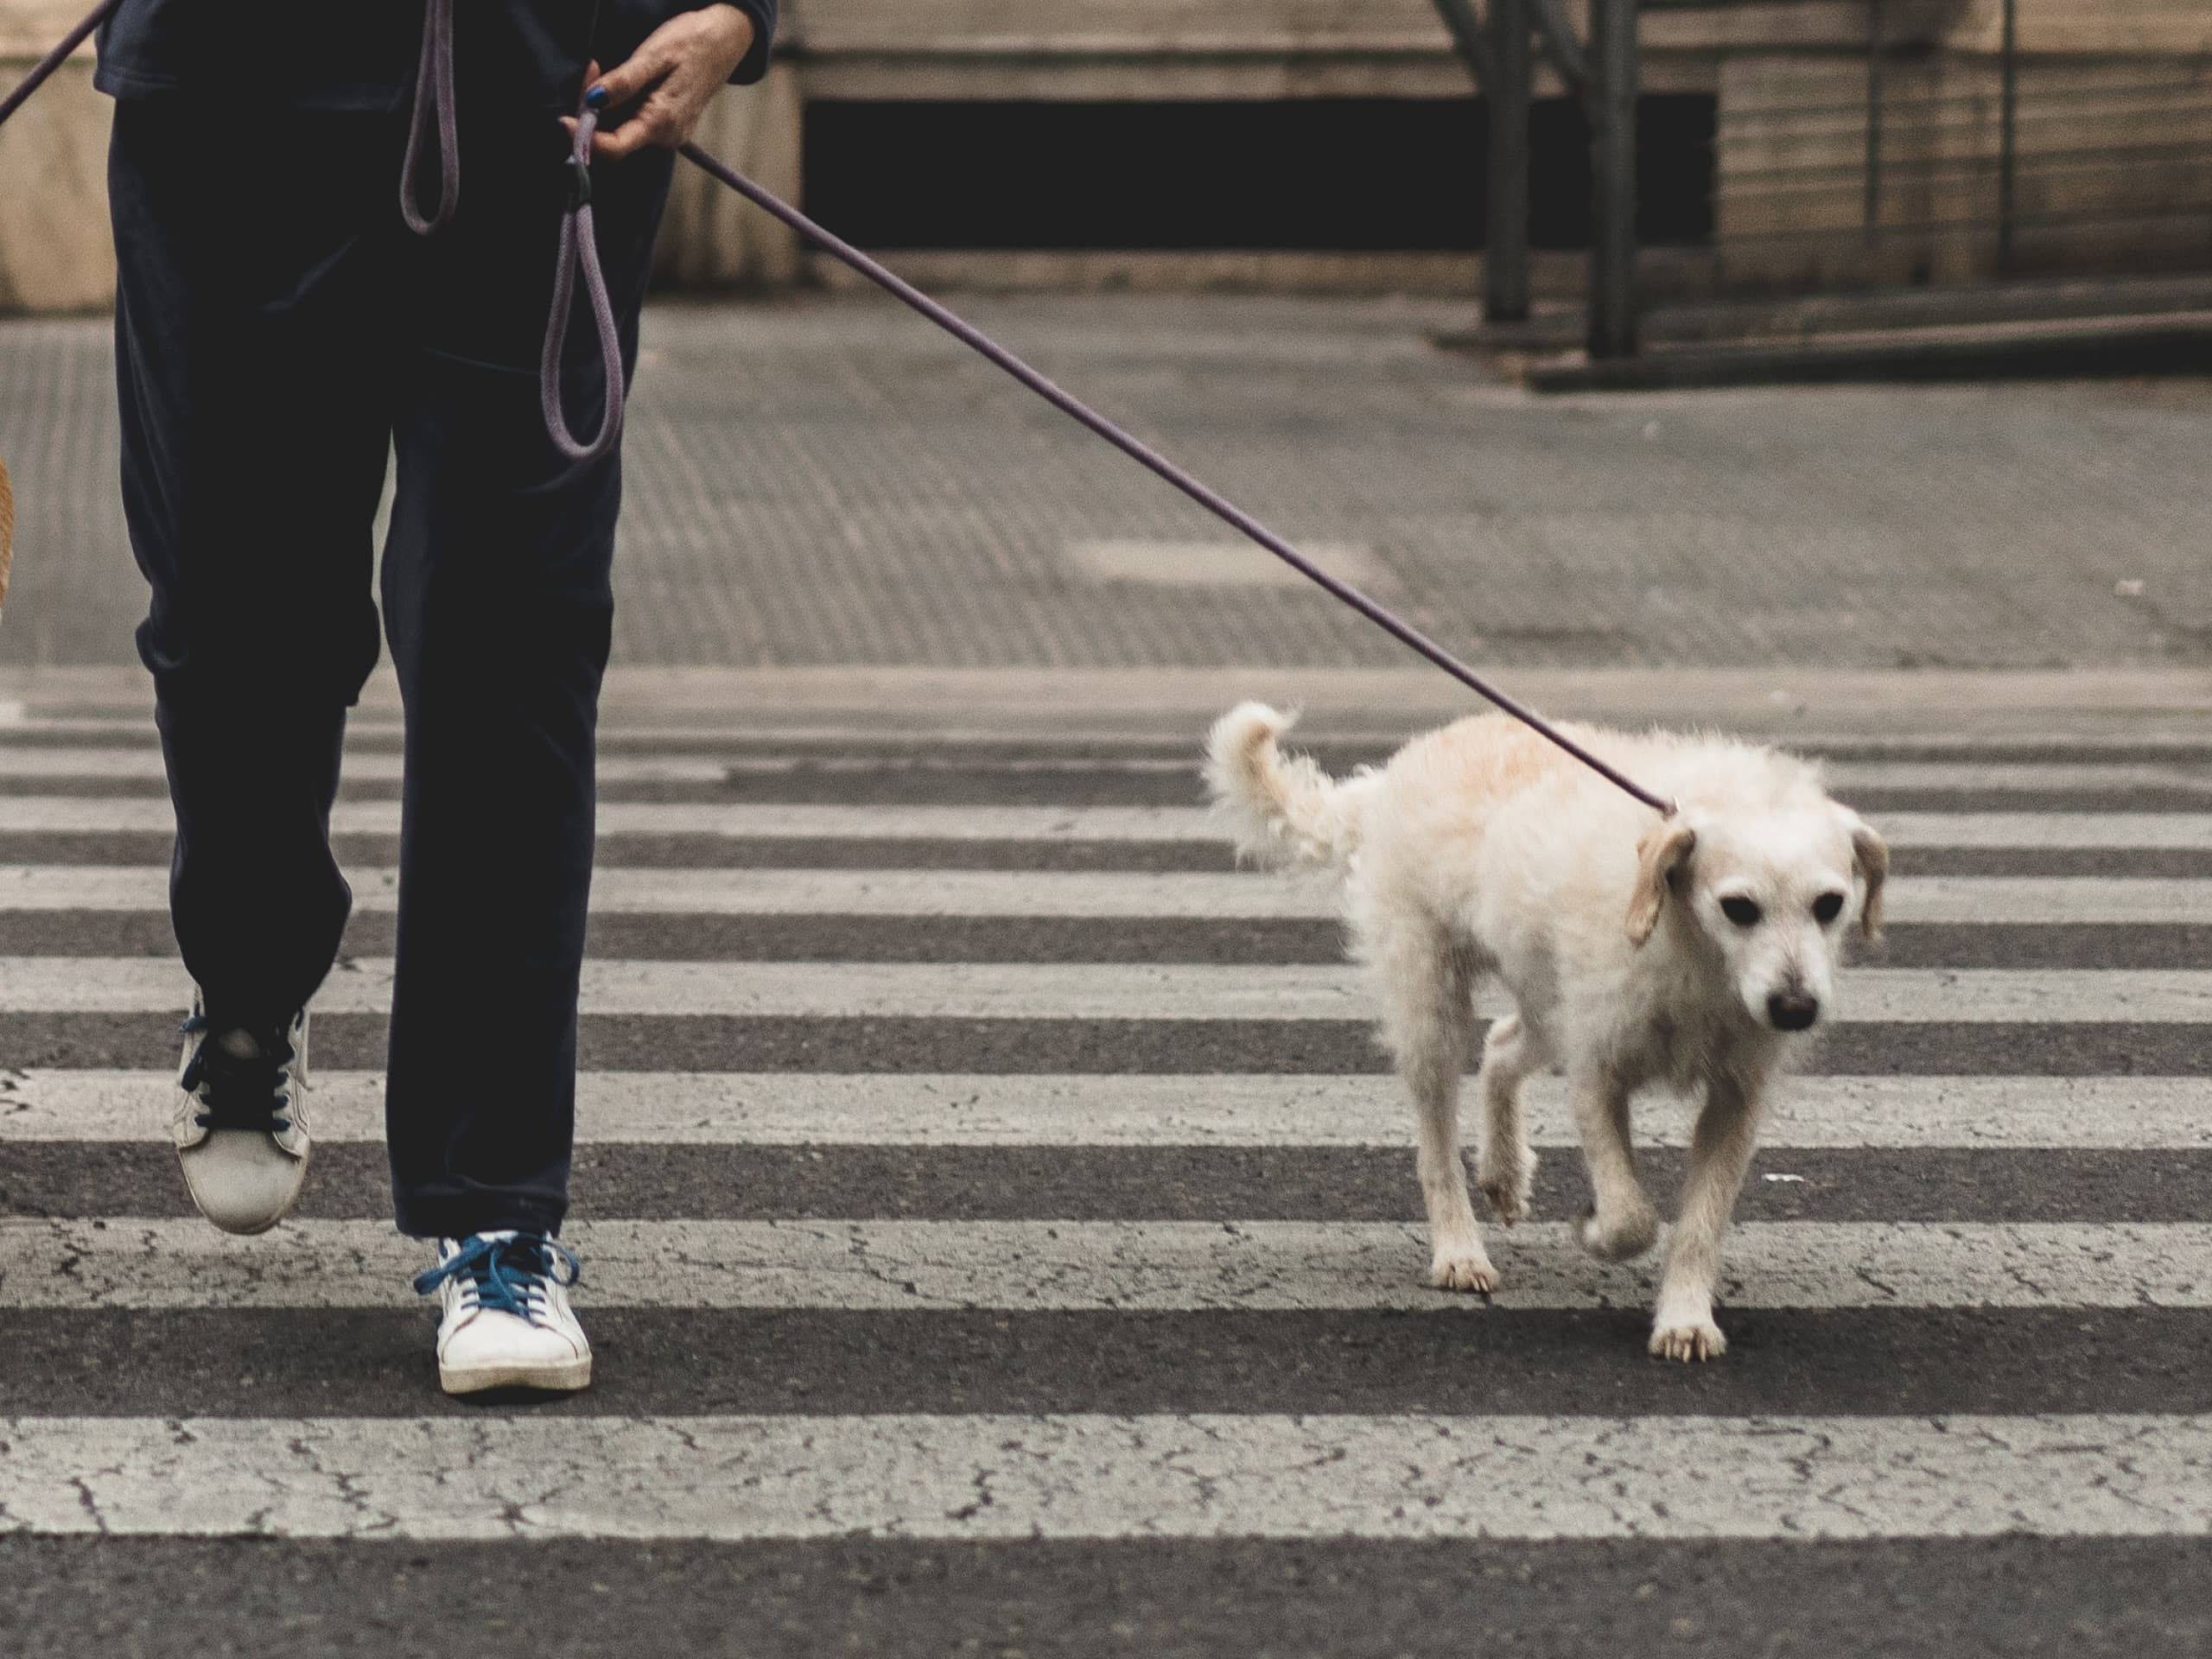 Dog being walked, crossing the street in the city